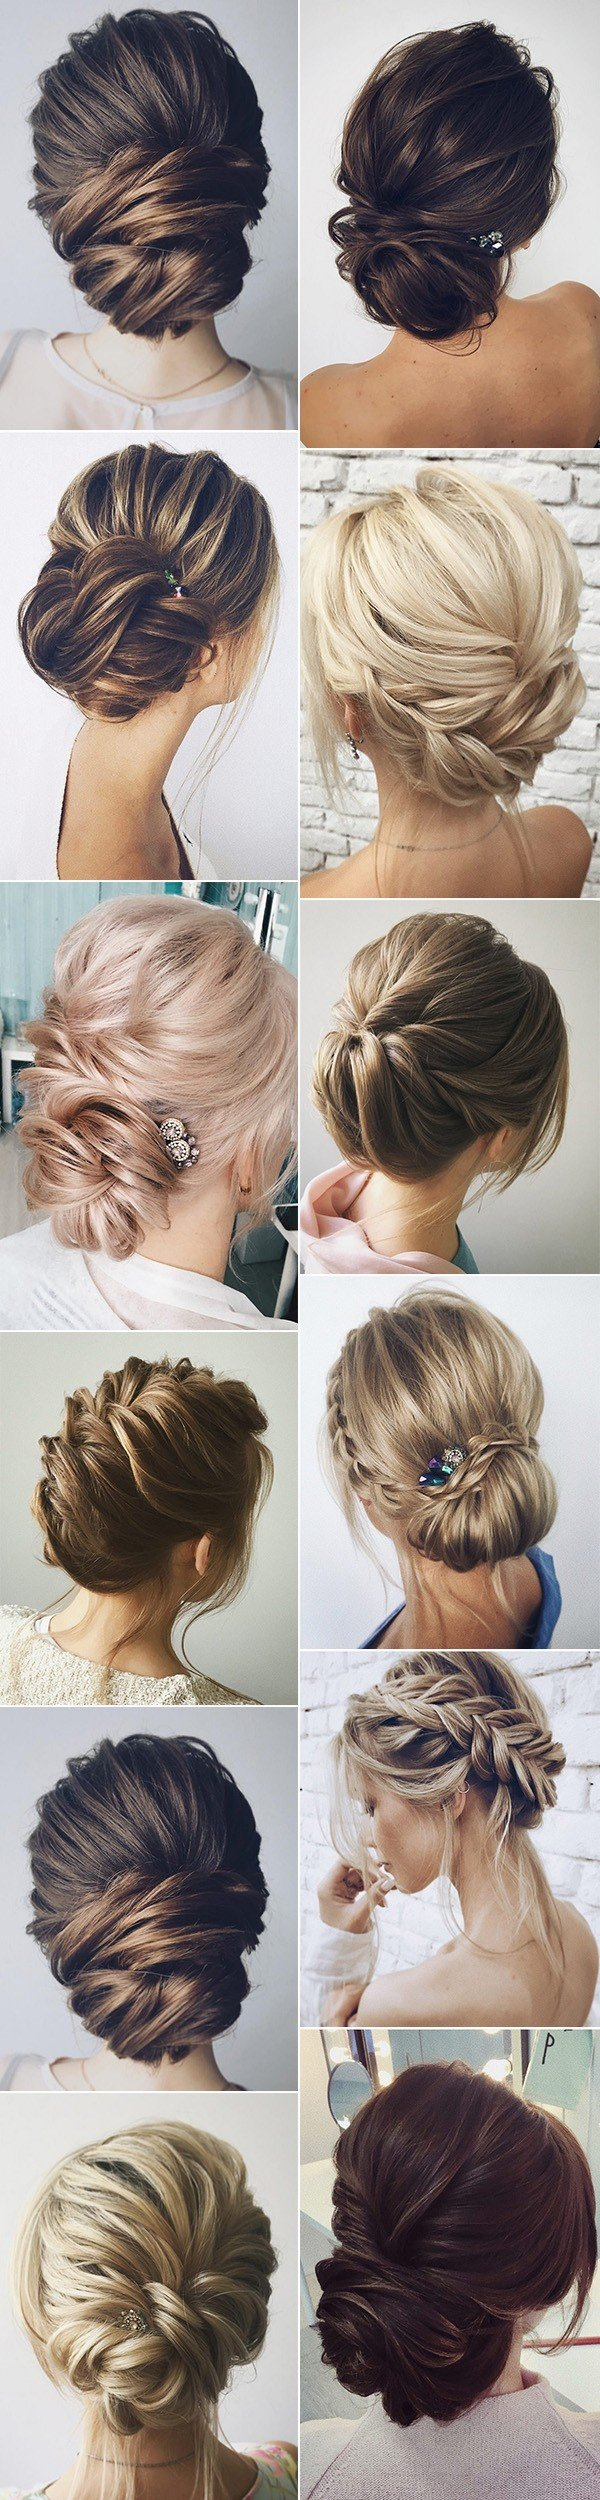 Wedding hairstyles archives oh best day ever elegant bridal updos wedding hairstyles junglespirit Images